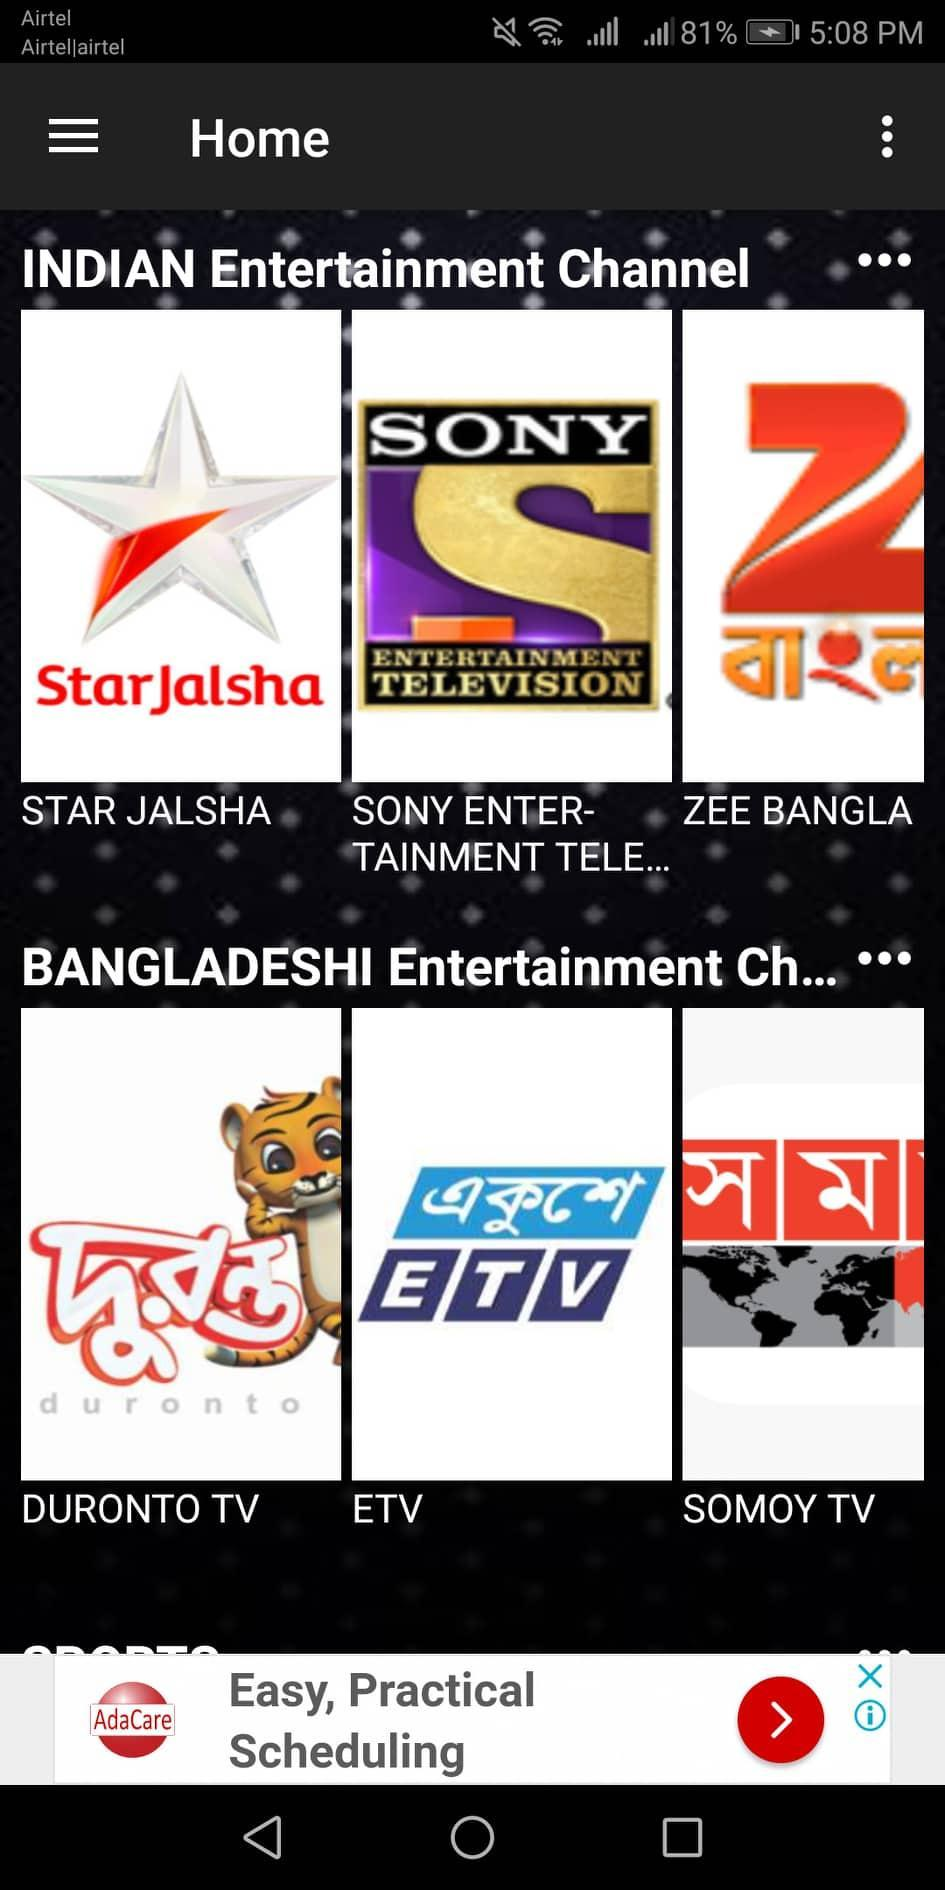 All In One LIVE TV for Android - APK Download